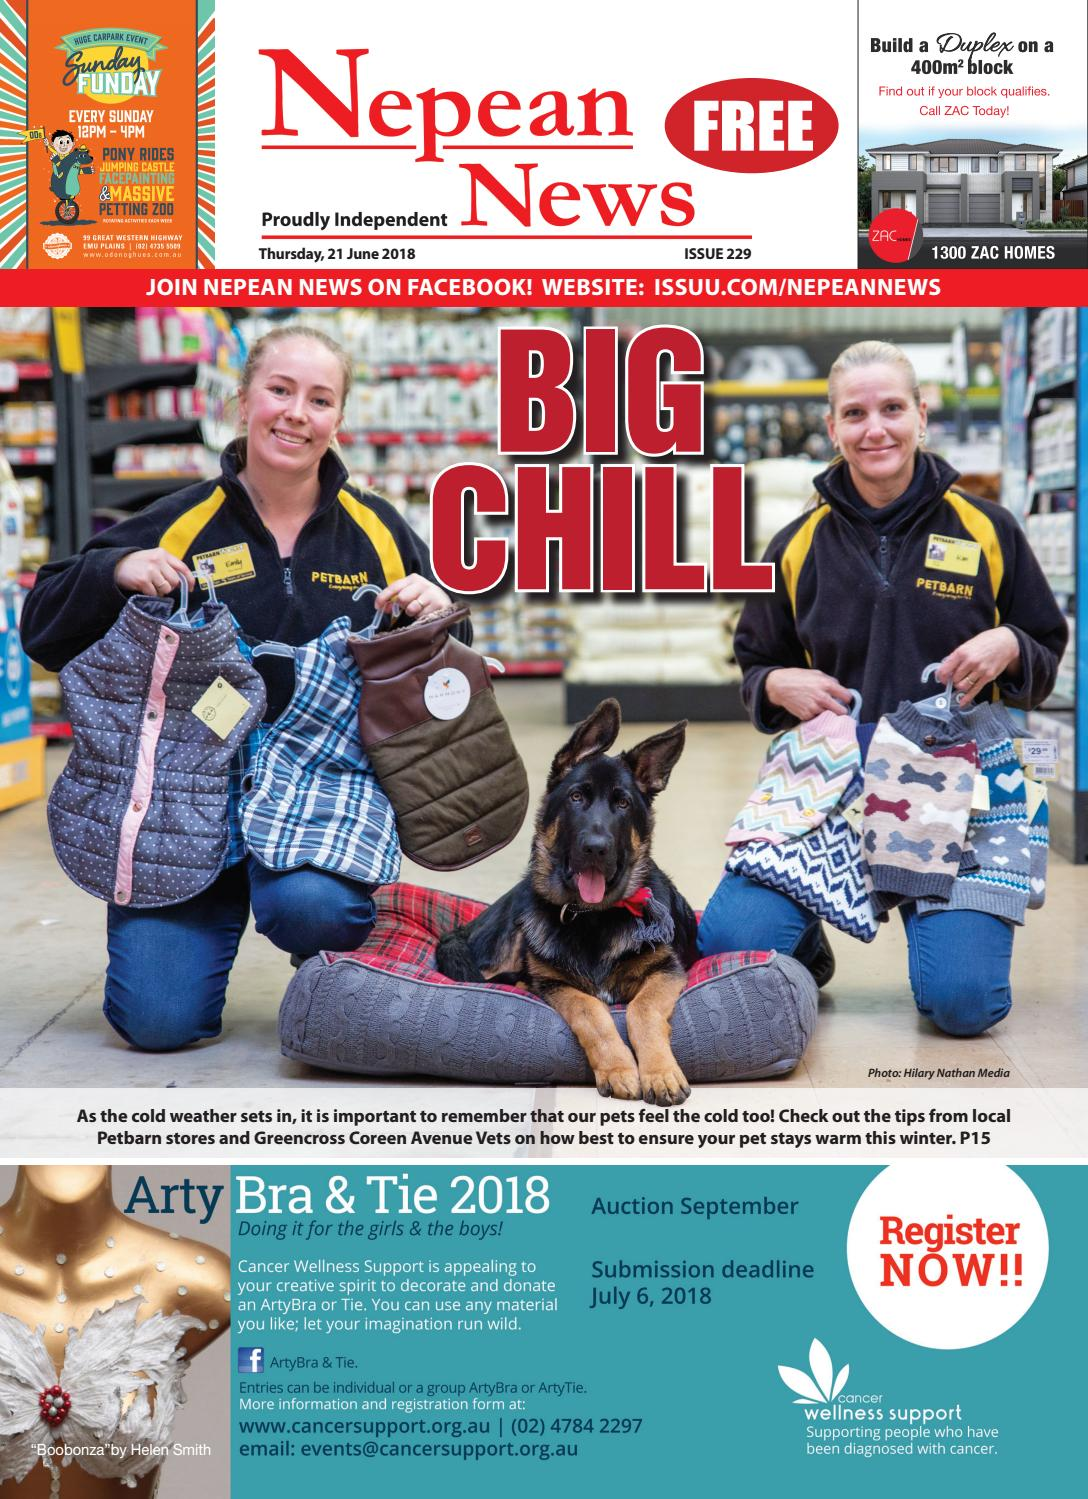 617c1abfc5 Nepeannews 21june2018 by Nepean News - issuu